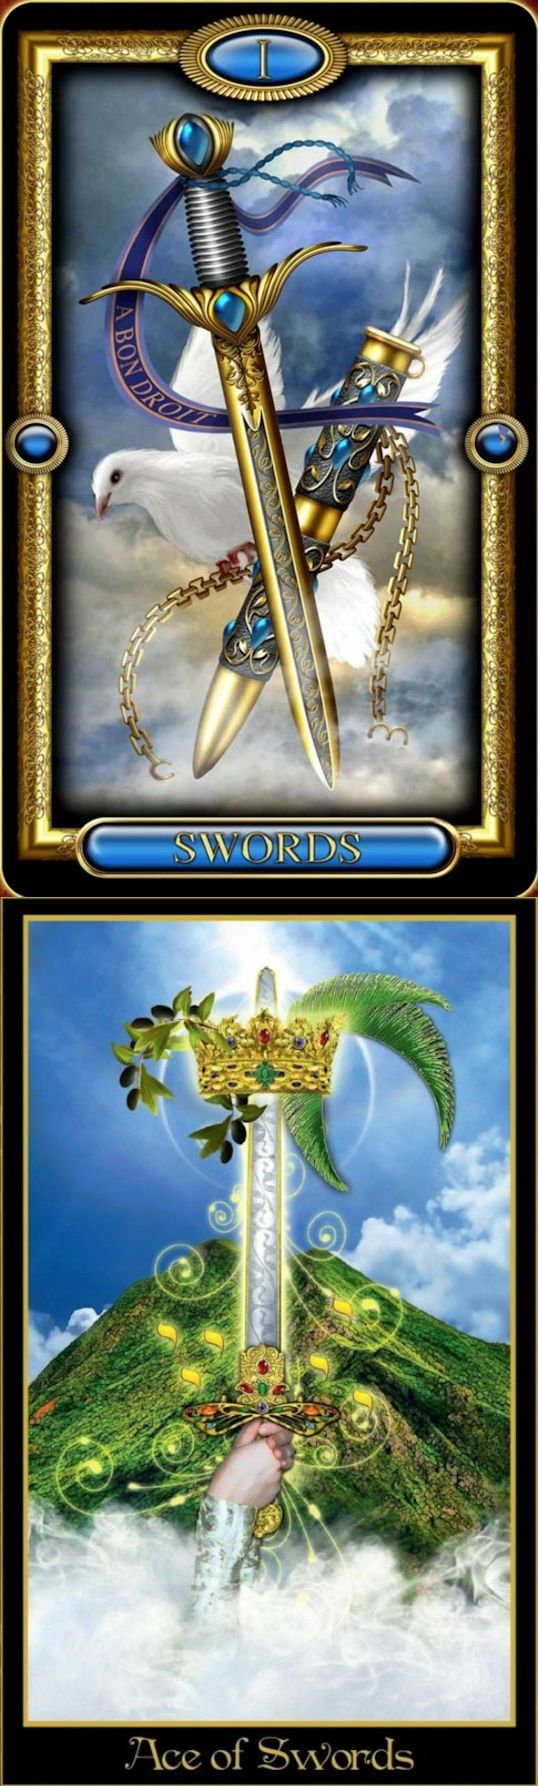 Ace of Swords: potential for immense power and success and using incredible power for evil (reverse). Royale Tarot deck and Illuminati Tarot deck: online tarot prediction, tarot card reading yes or no and dark tarot card reading. Best 2018 psychic readings free and wicca.